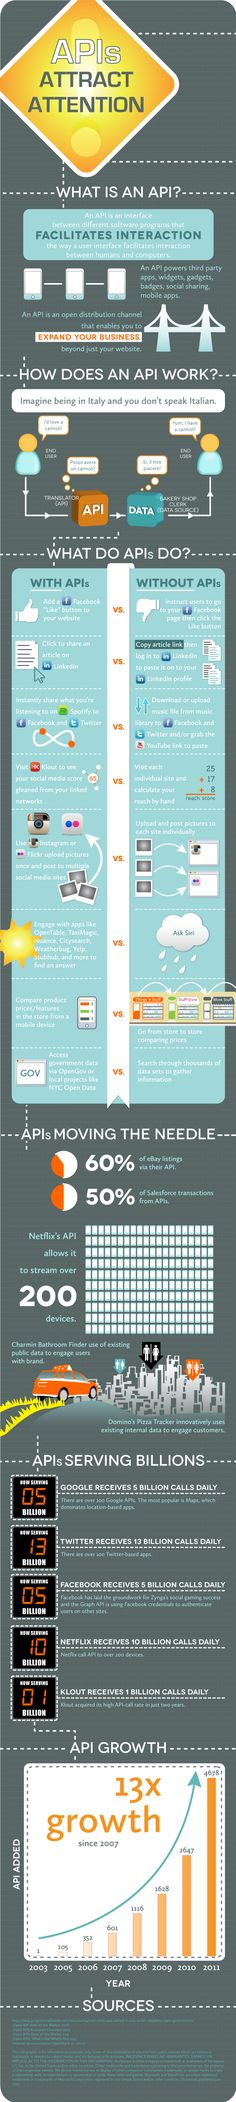 Not sure what Application Programming Interfaces (APIs) are? Check out this great infographic that explains it all in simple, layman's terms.